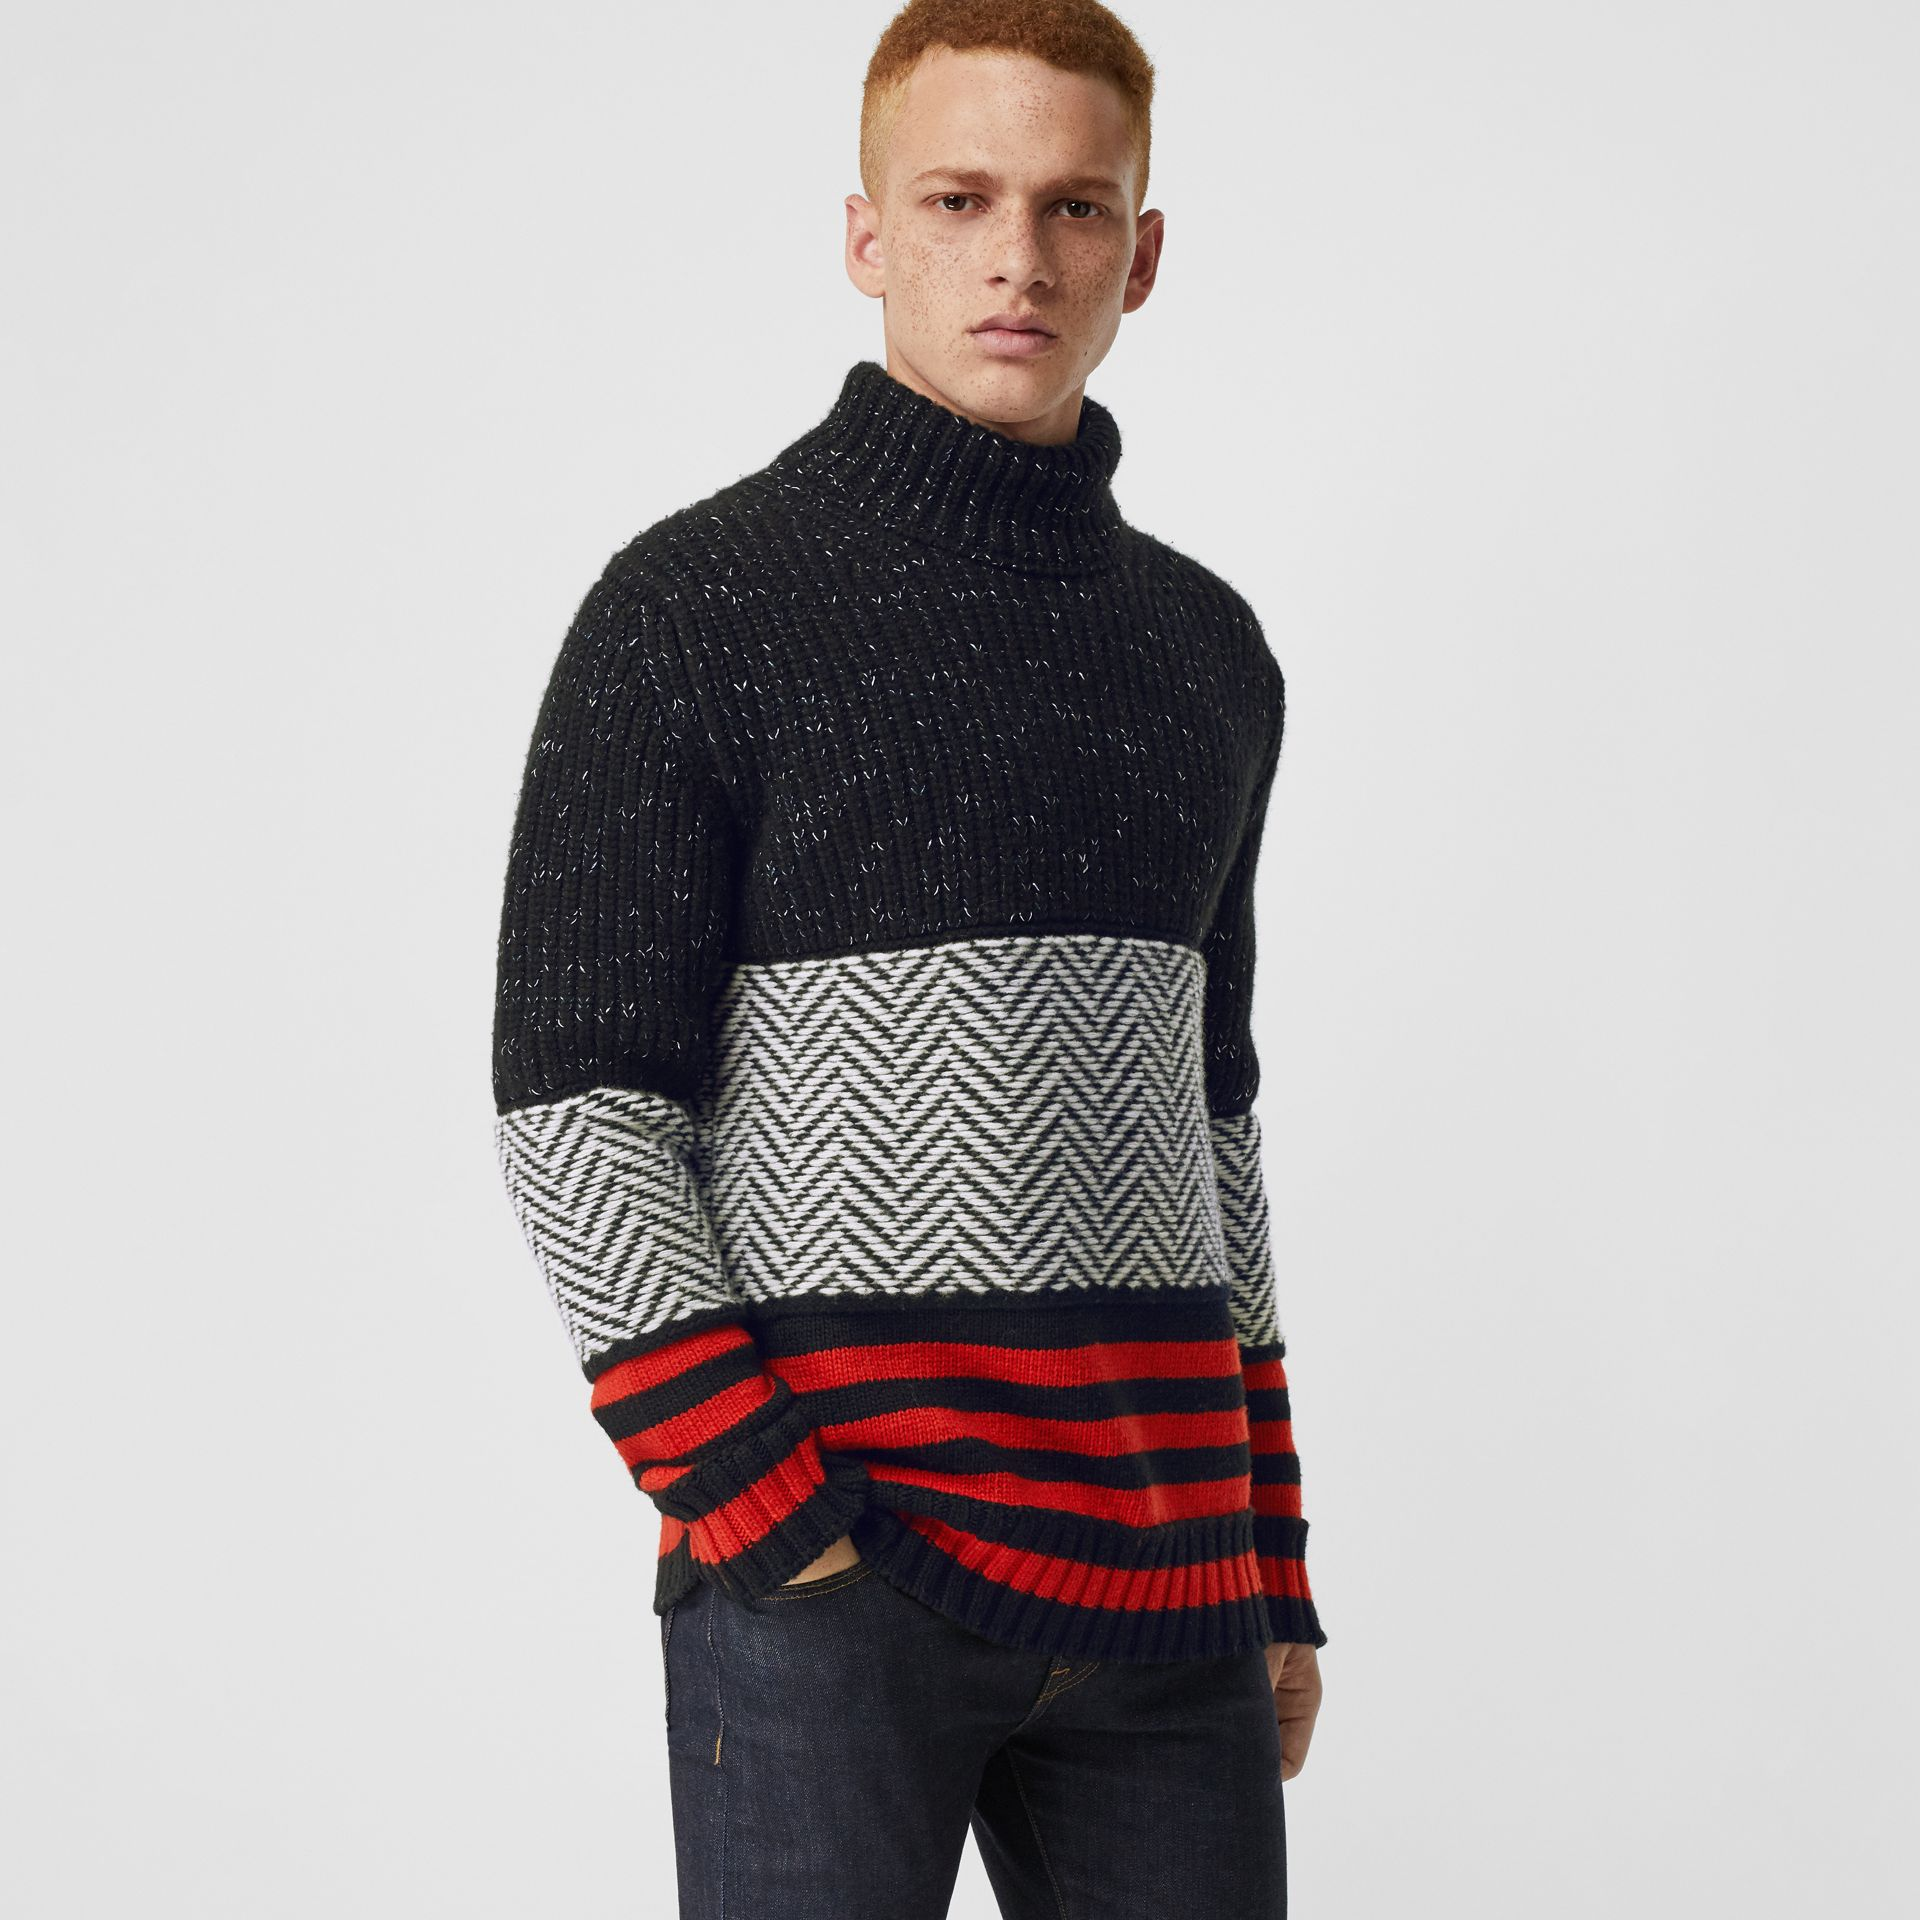 Contrast Knit Wool Cashmere Blend Sweater in Black - Men | Burberry - gallery image 5